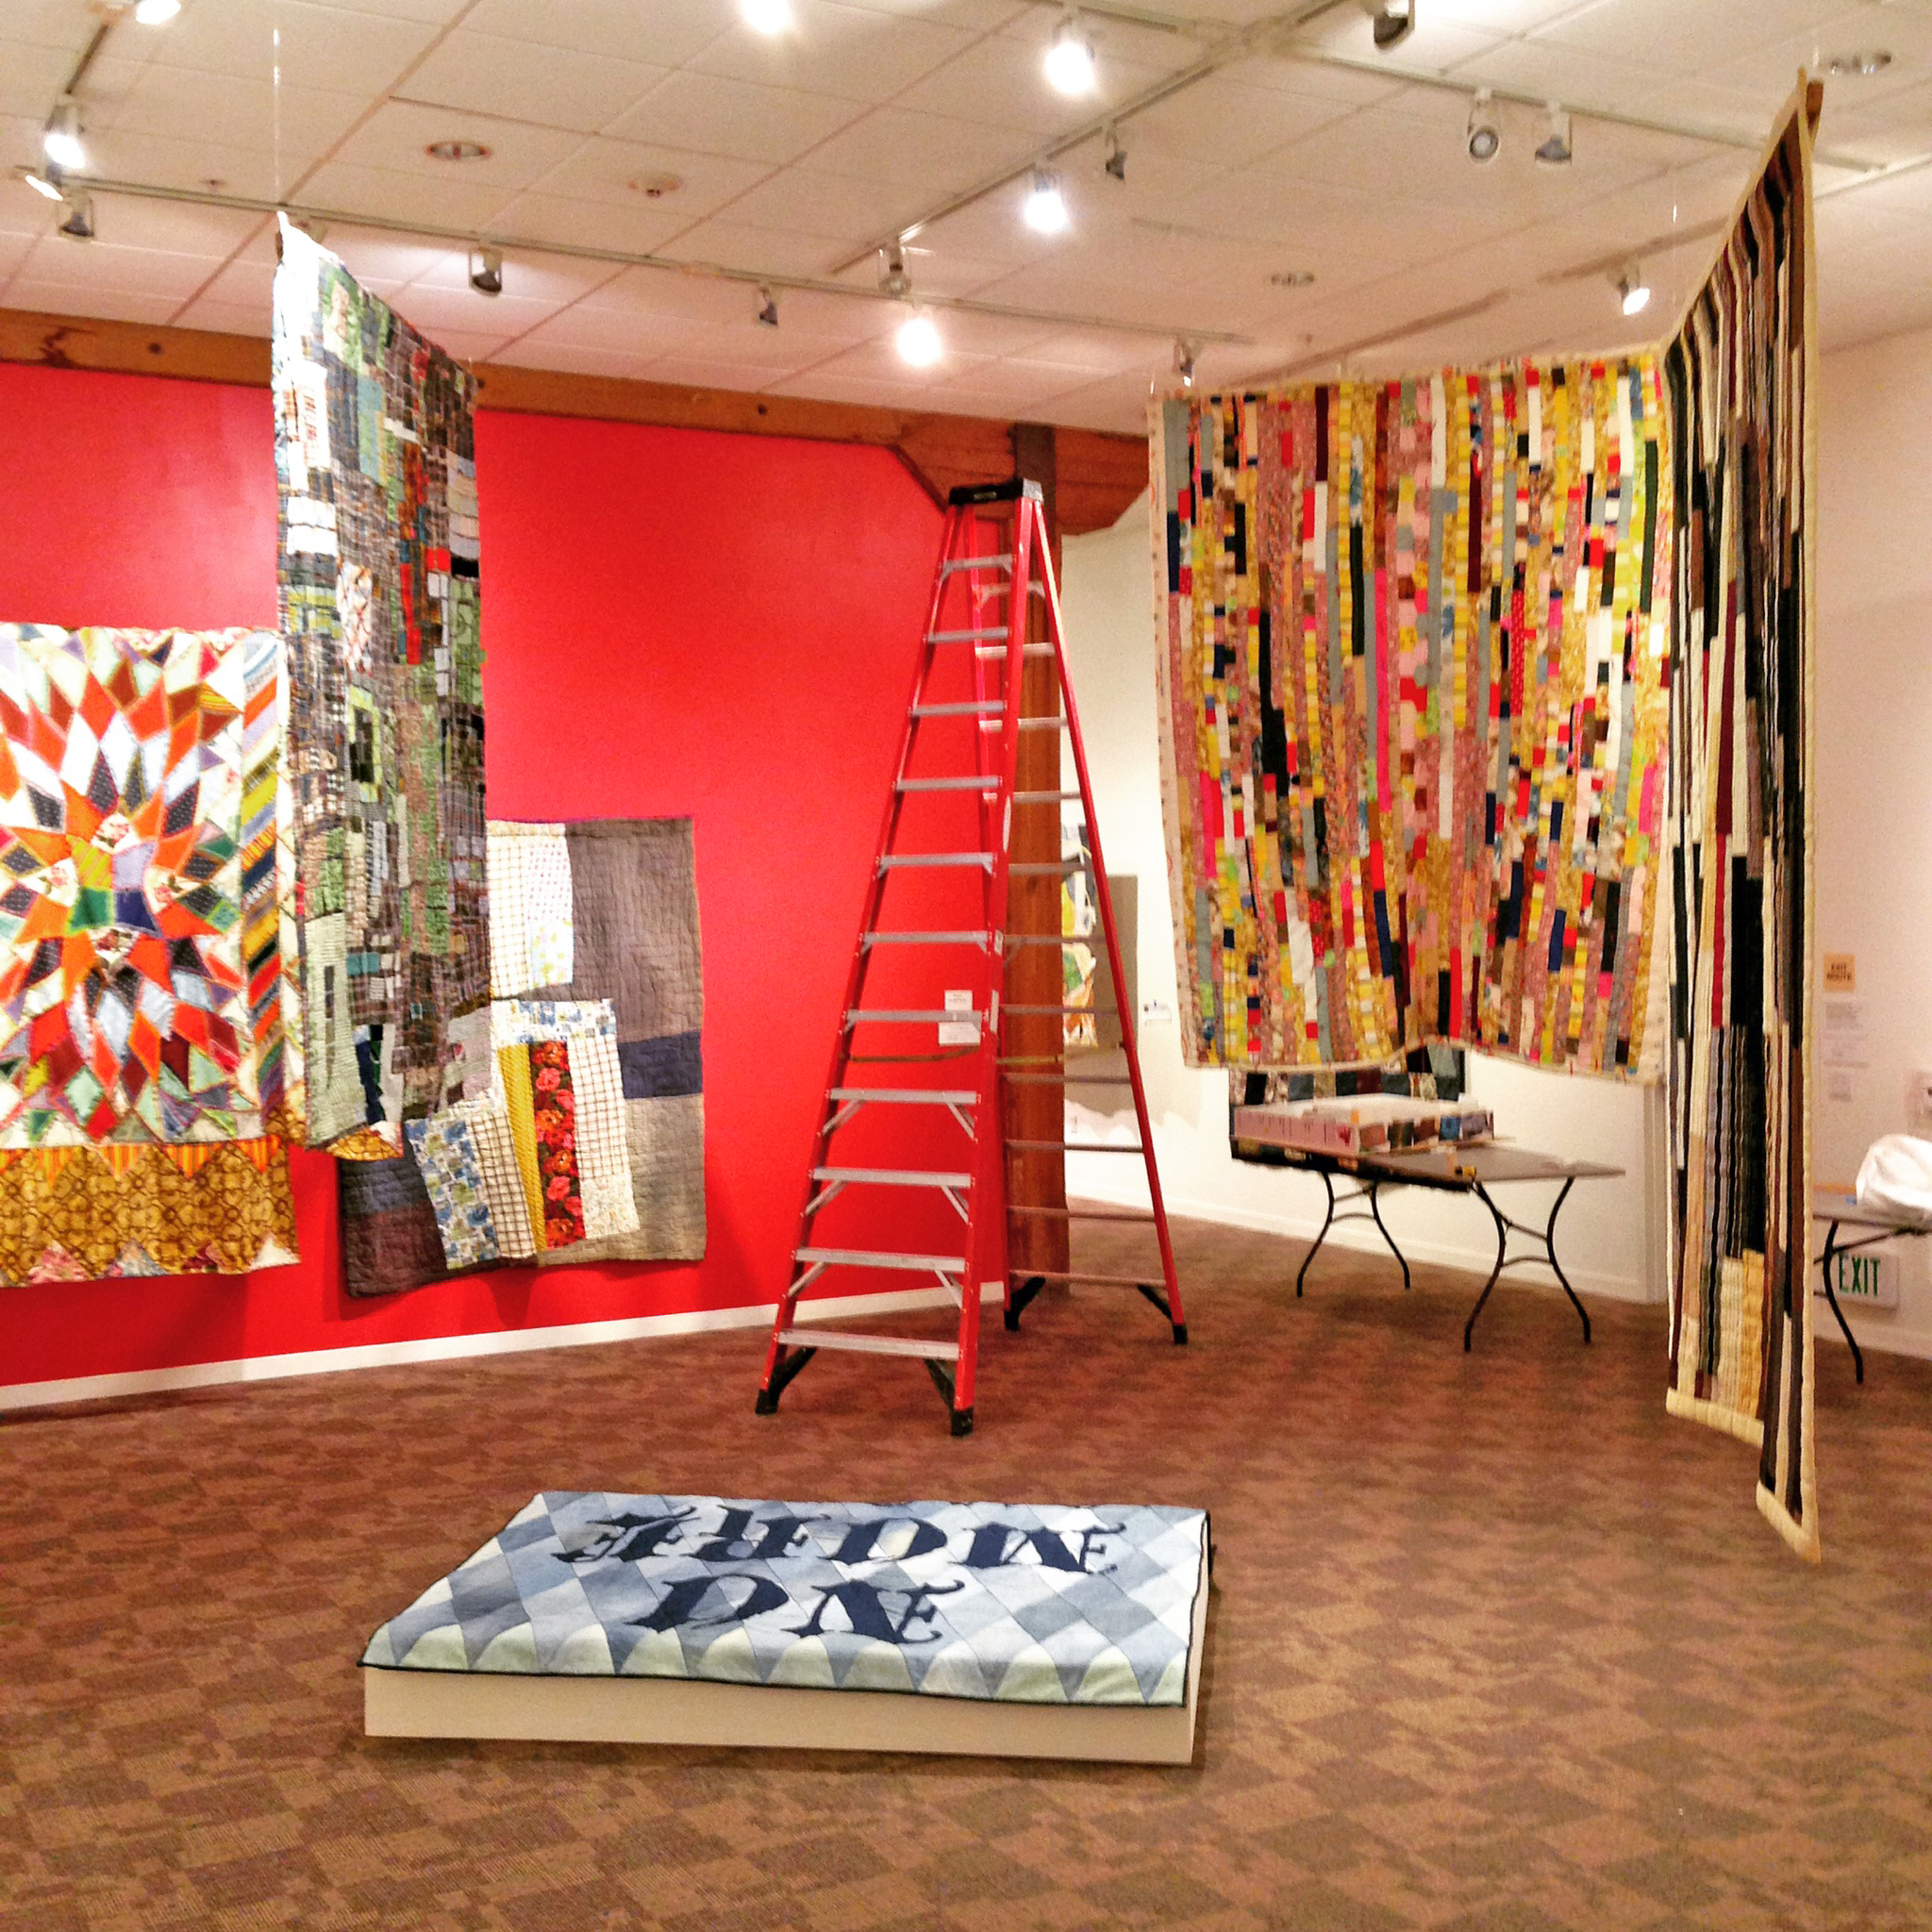 This installation allows viewers to see the front and back of many quilts.